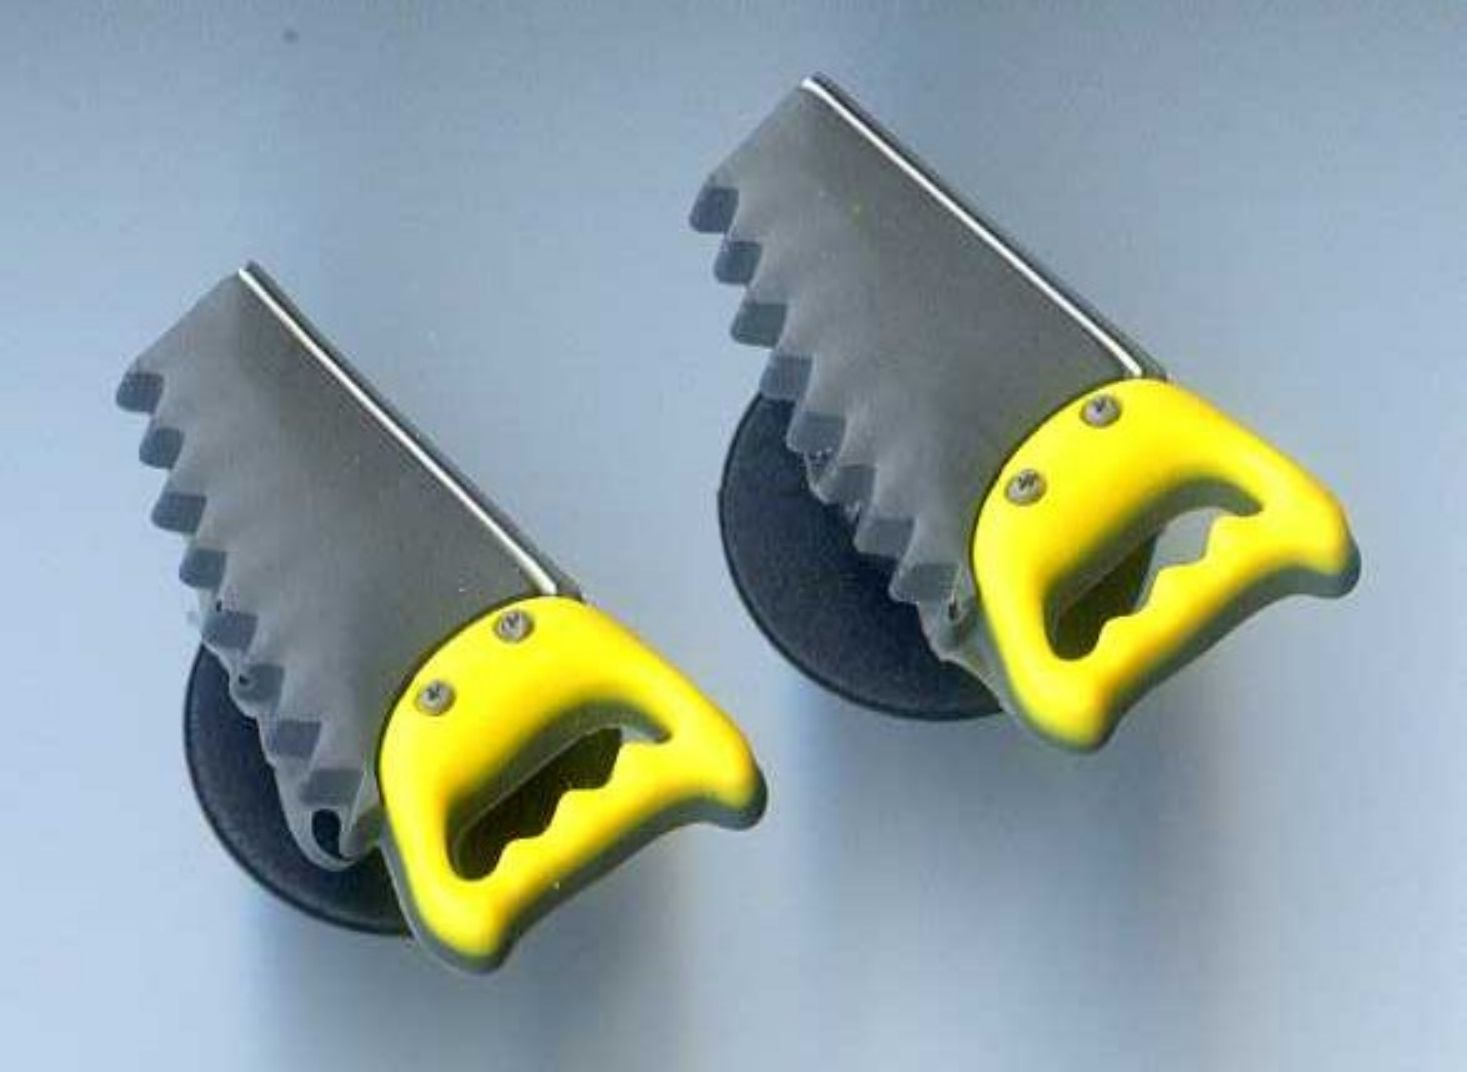 Tools_-_handsaw_-_yellow